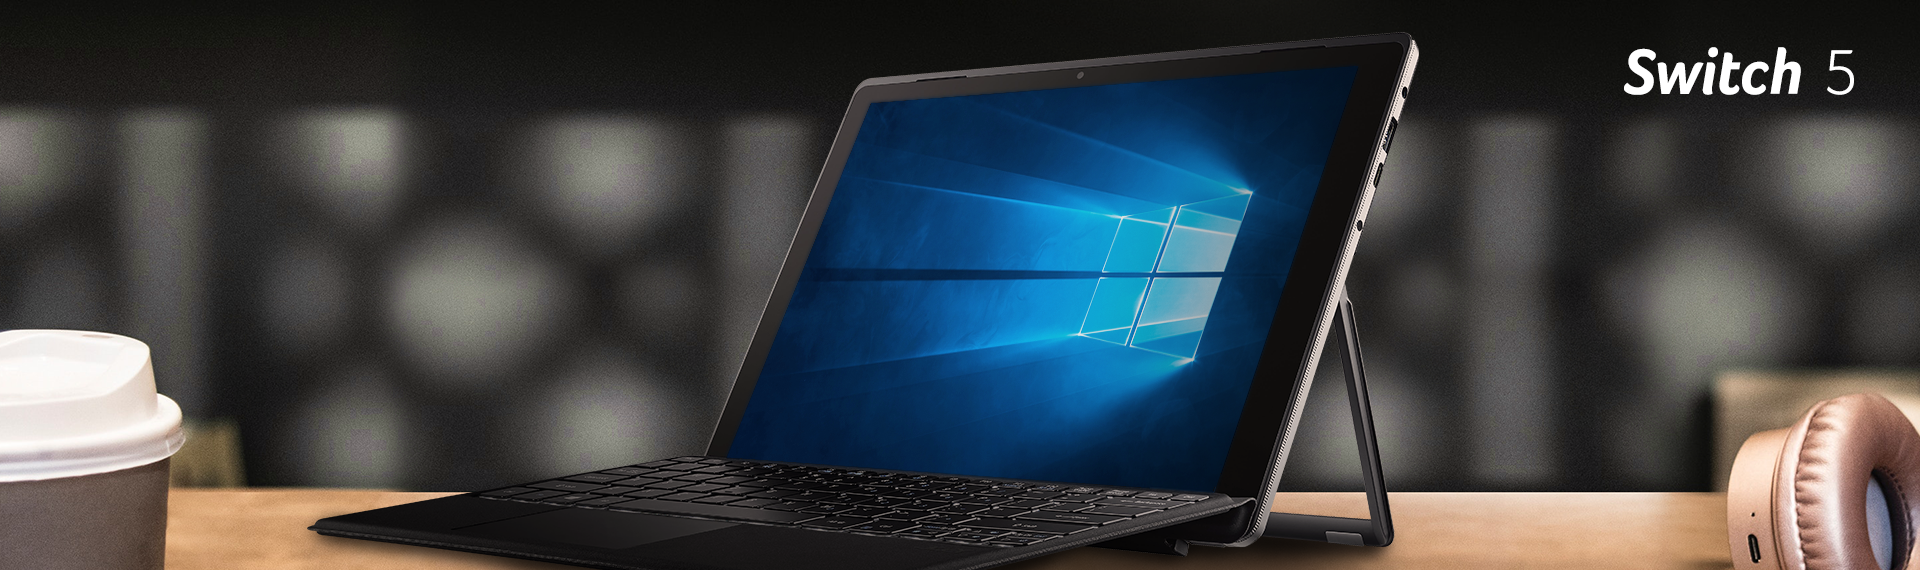 Windows 10 Home vs Windows 10 Pro, Apa Bedanya?